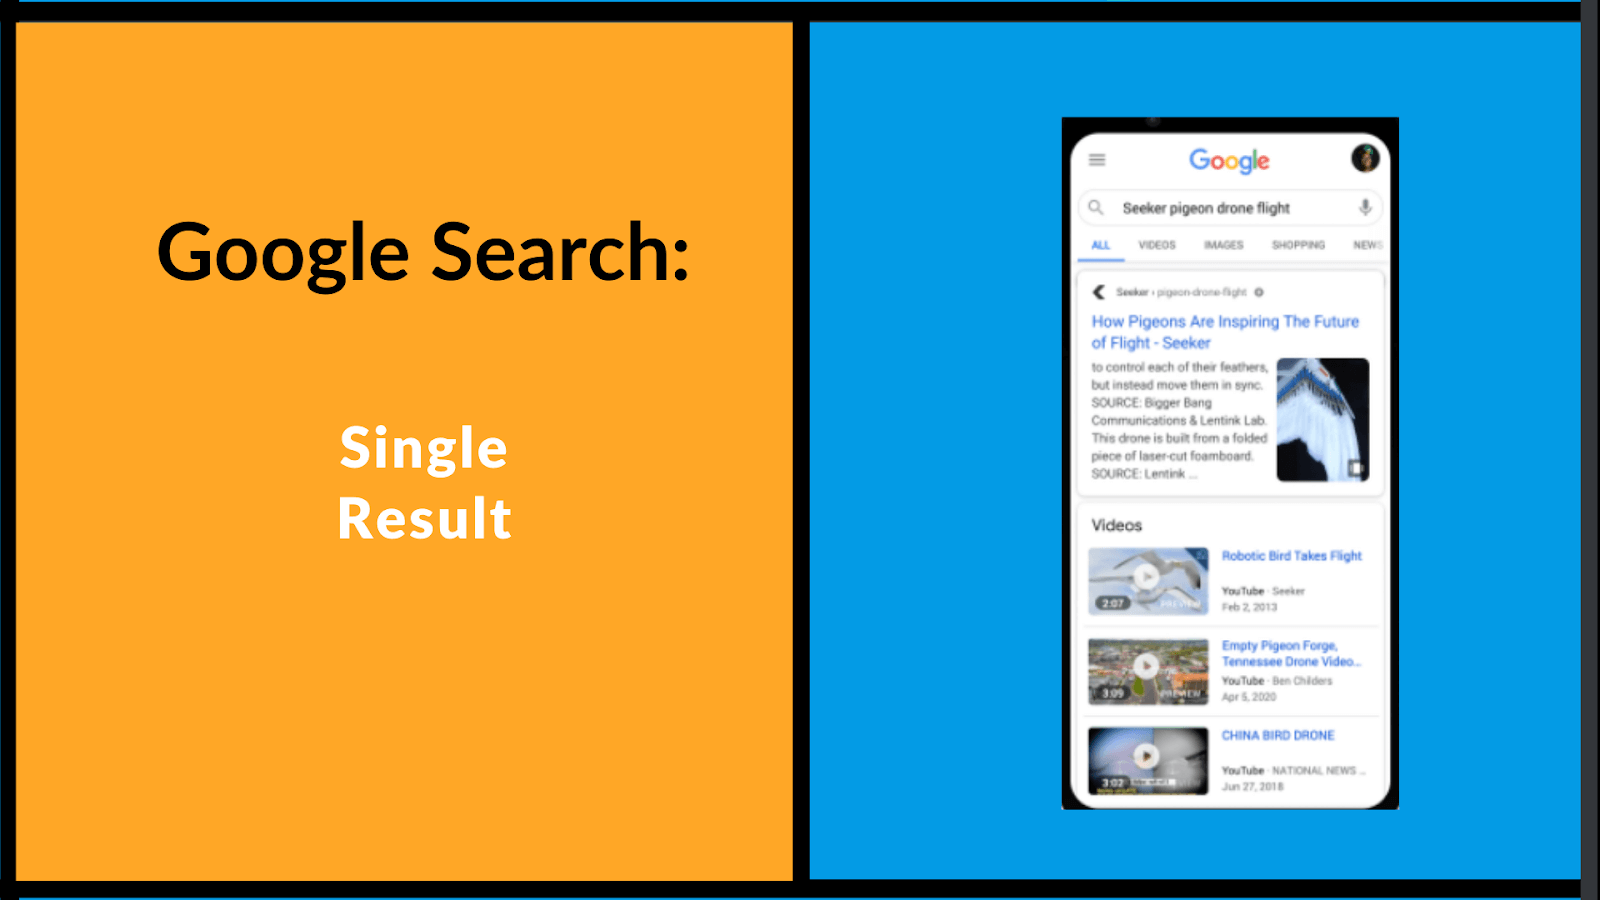 Google web stories within google search, as a single result